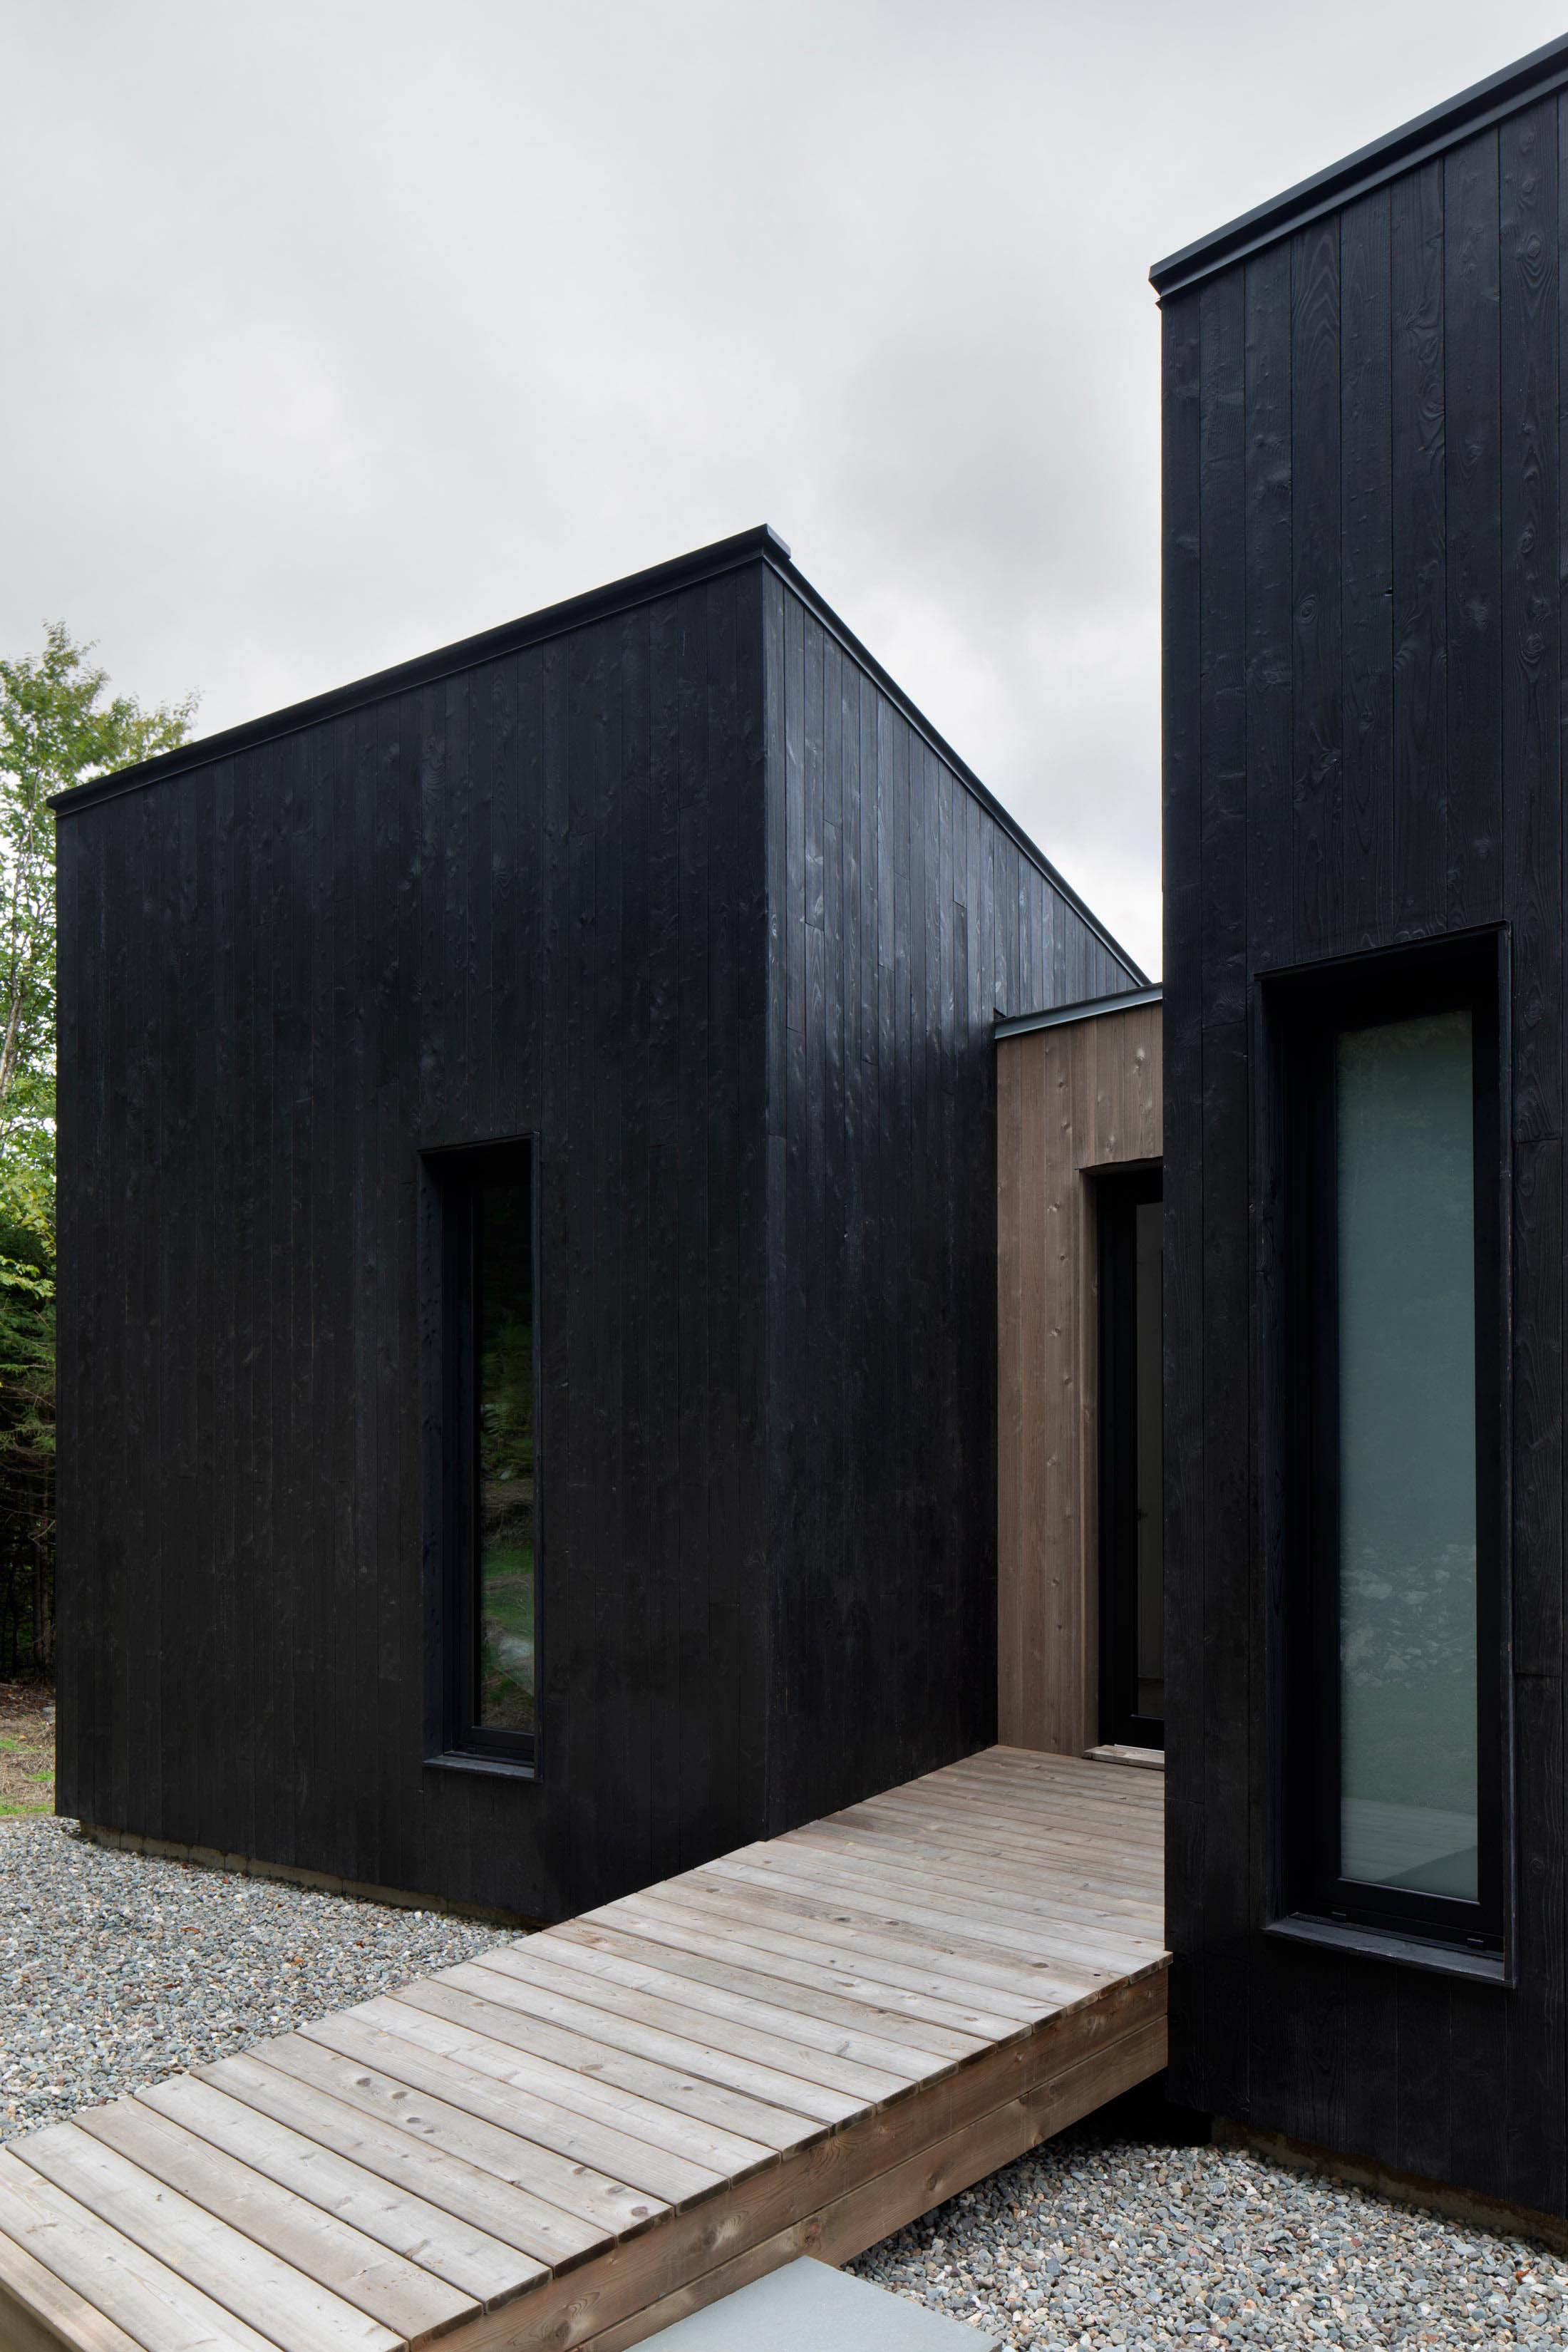 IGNANT-Architecture-Nature-Humaine-La-Bionocle-Cabin-5